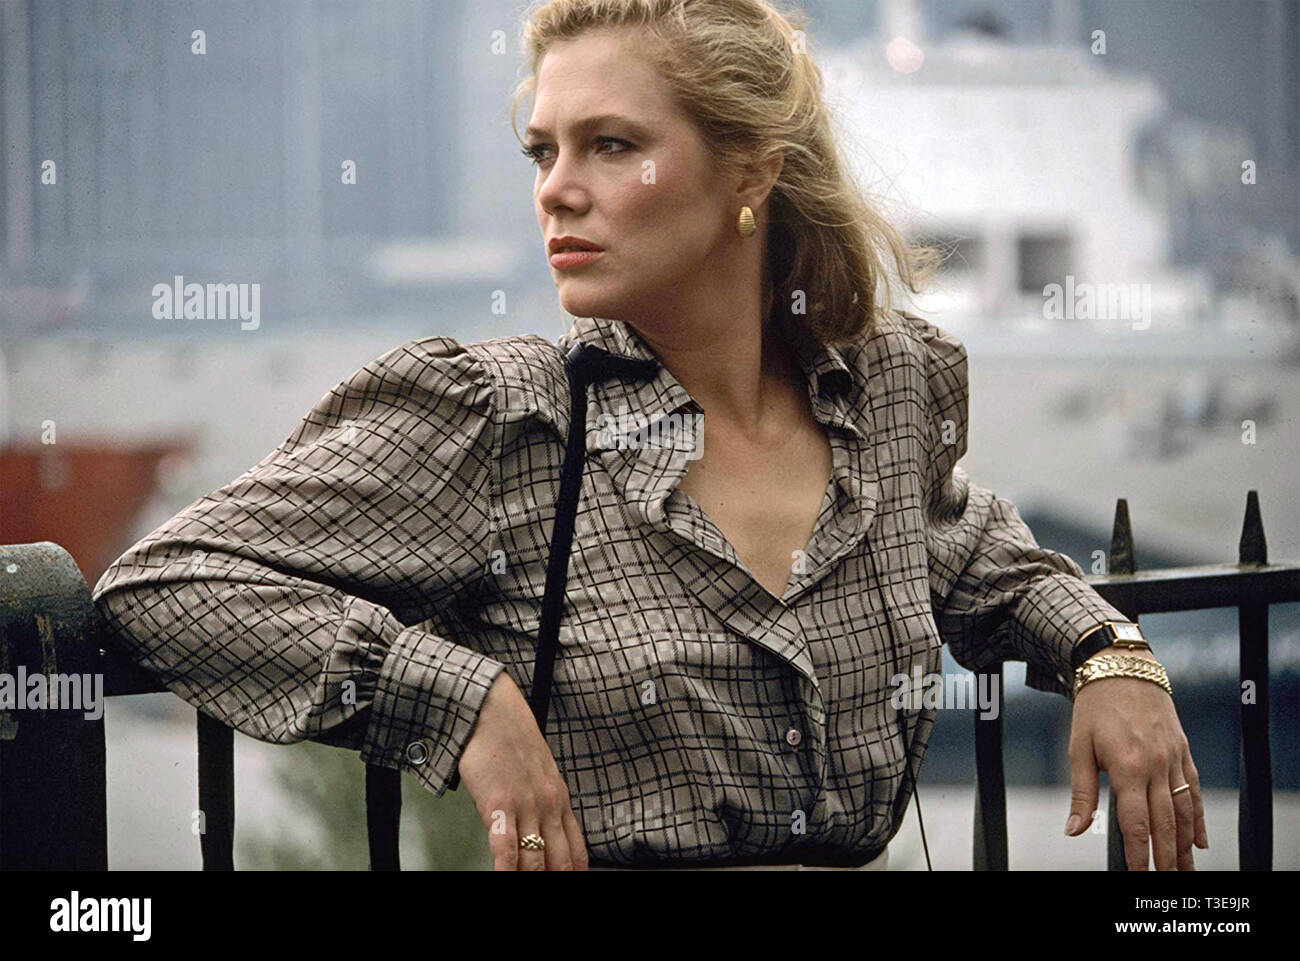 PRIZZI'S HONOR 1985 ABC MOTION PICTURES film with Kathleen Turner - Stock Image